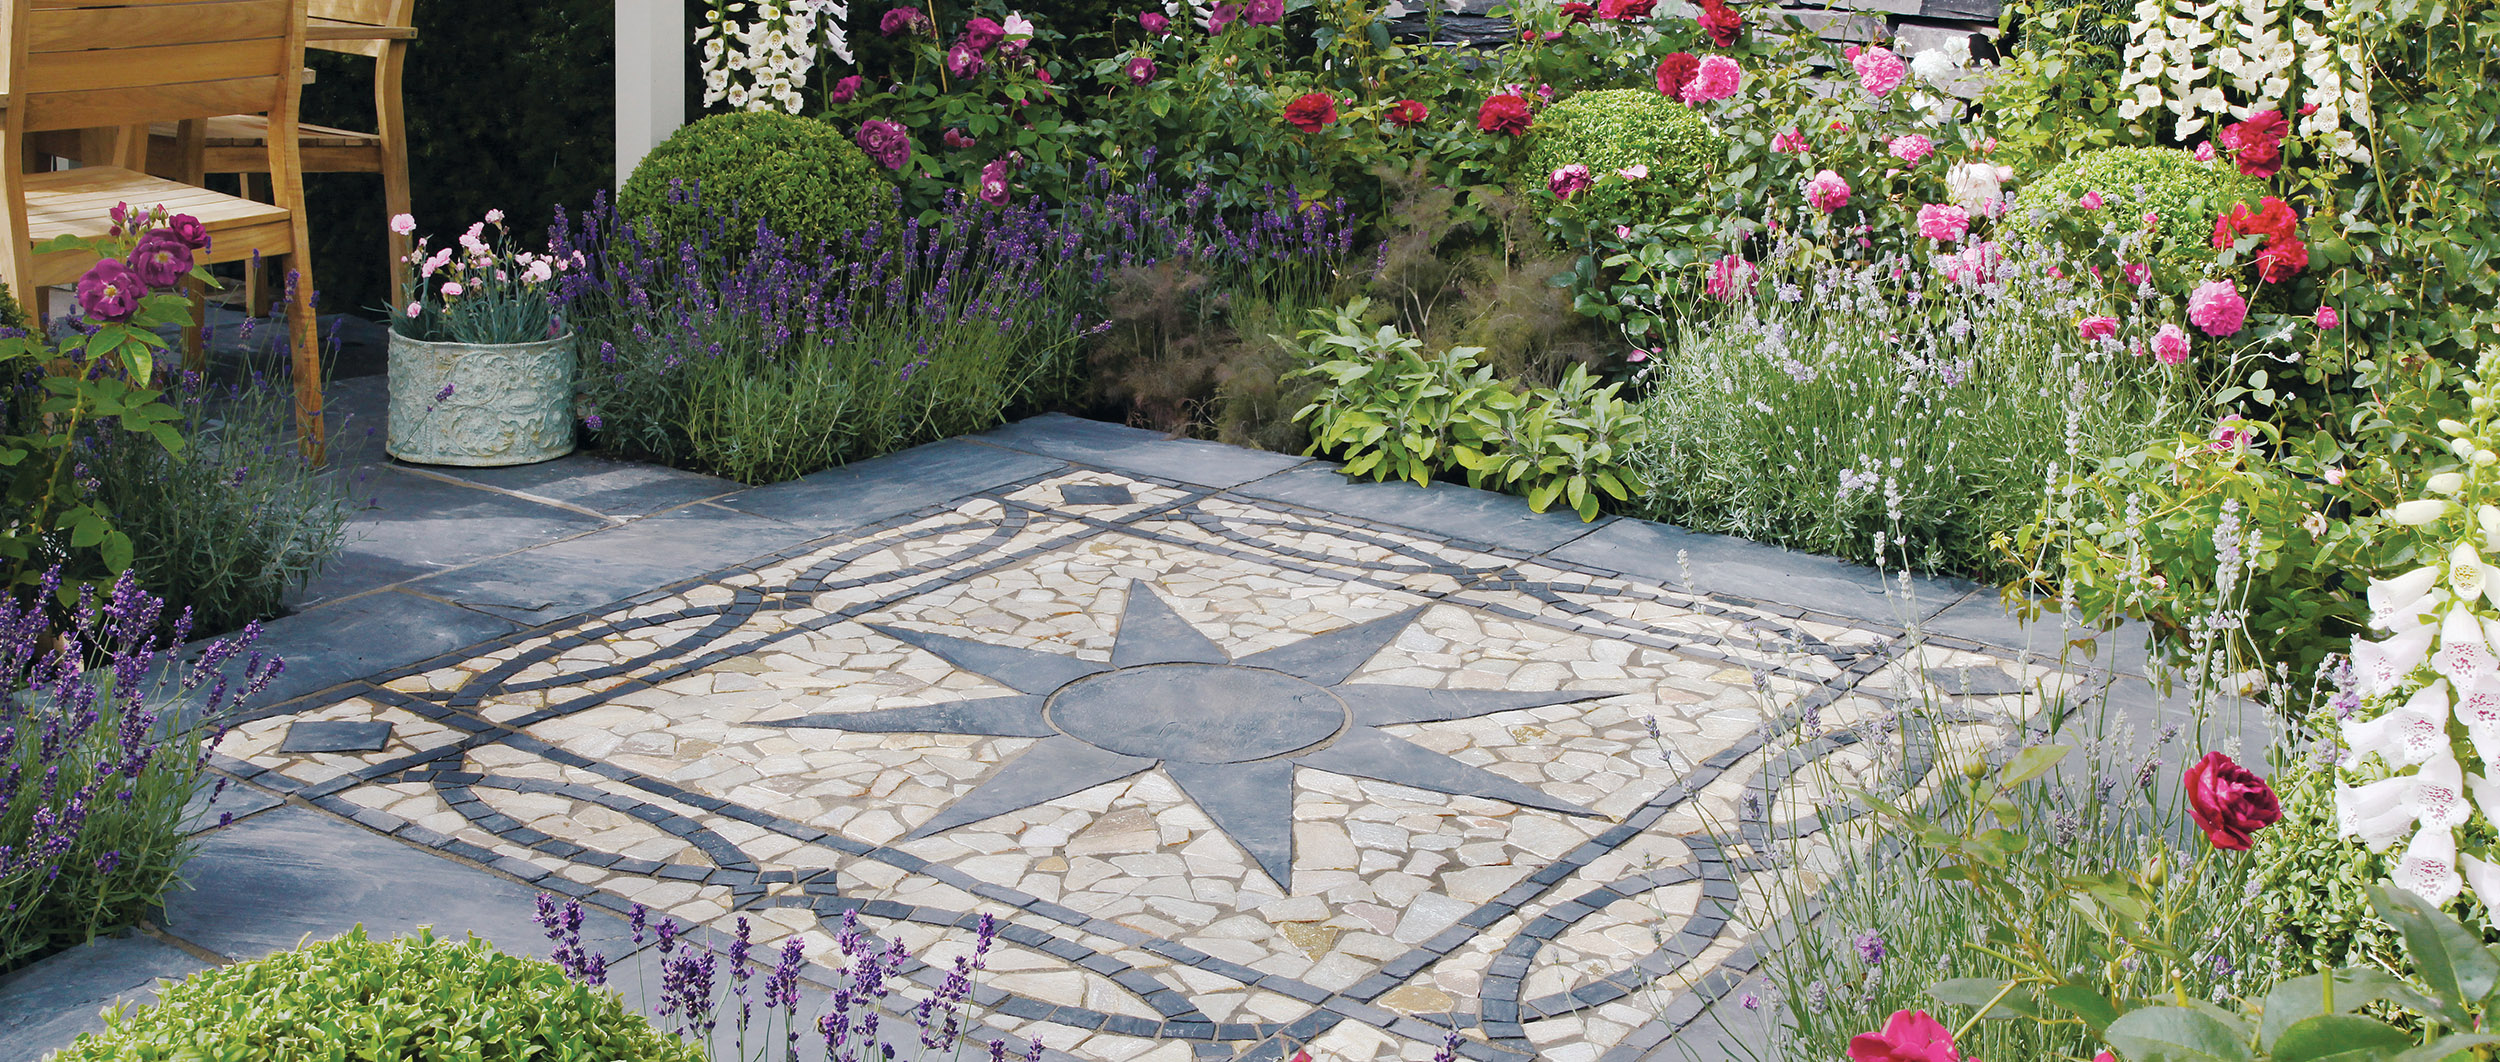 TOP FIVE WAYS TO MAKE YOUR GARDEN ENCHANTING